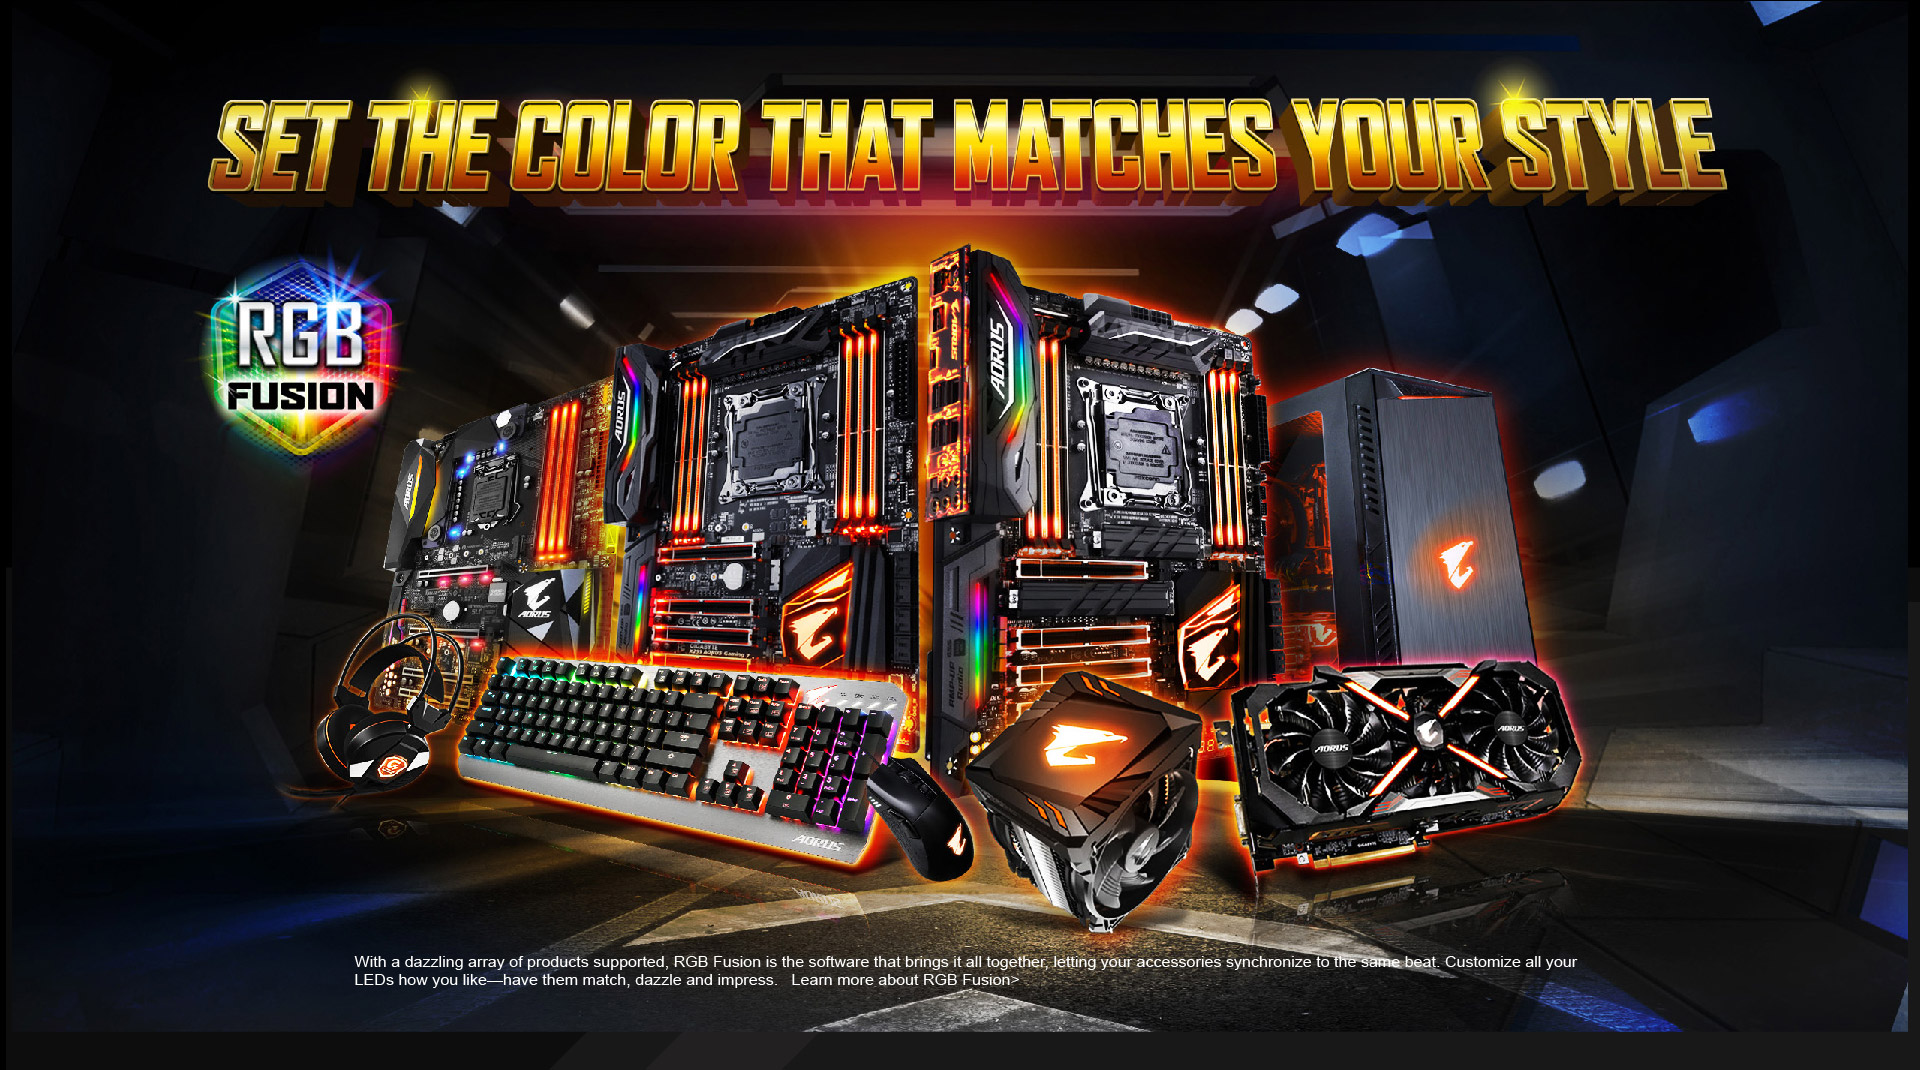 Z370p D3 Rev 10 Motherboard Gigabyte Global Dell Power Supply Color Wiring Diagram Learn More About Lighting